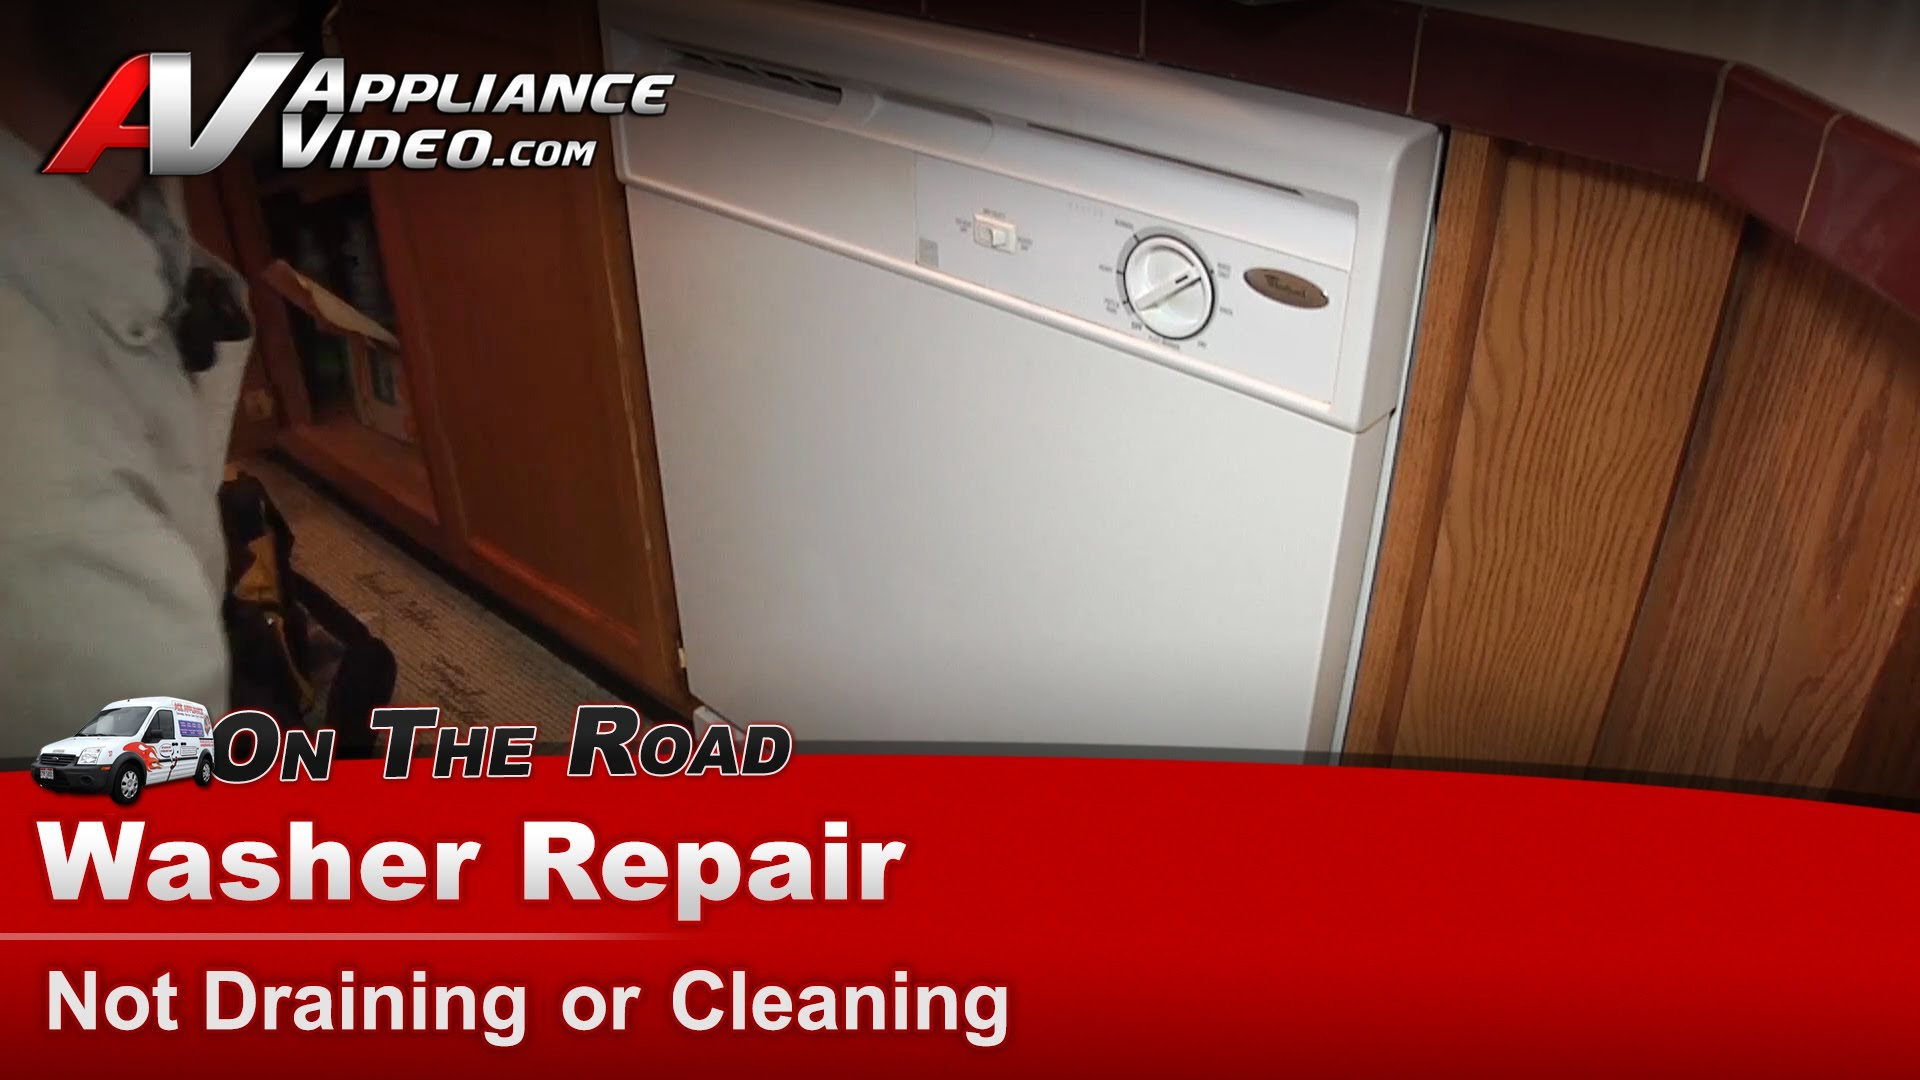 Whirlpool Du810swpq3 Dishwasher Repair  U2013 Not Draining Or